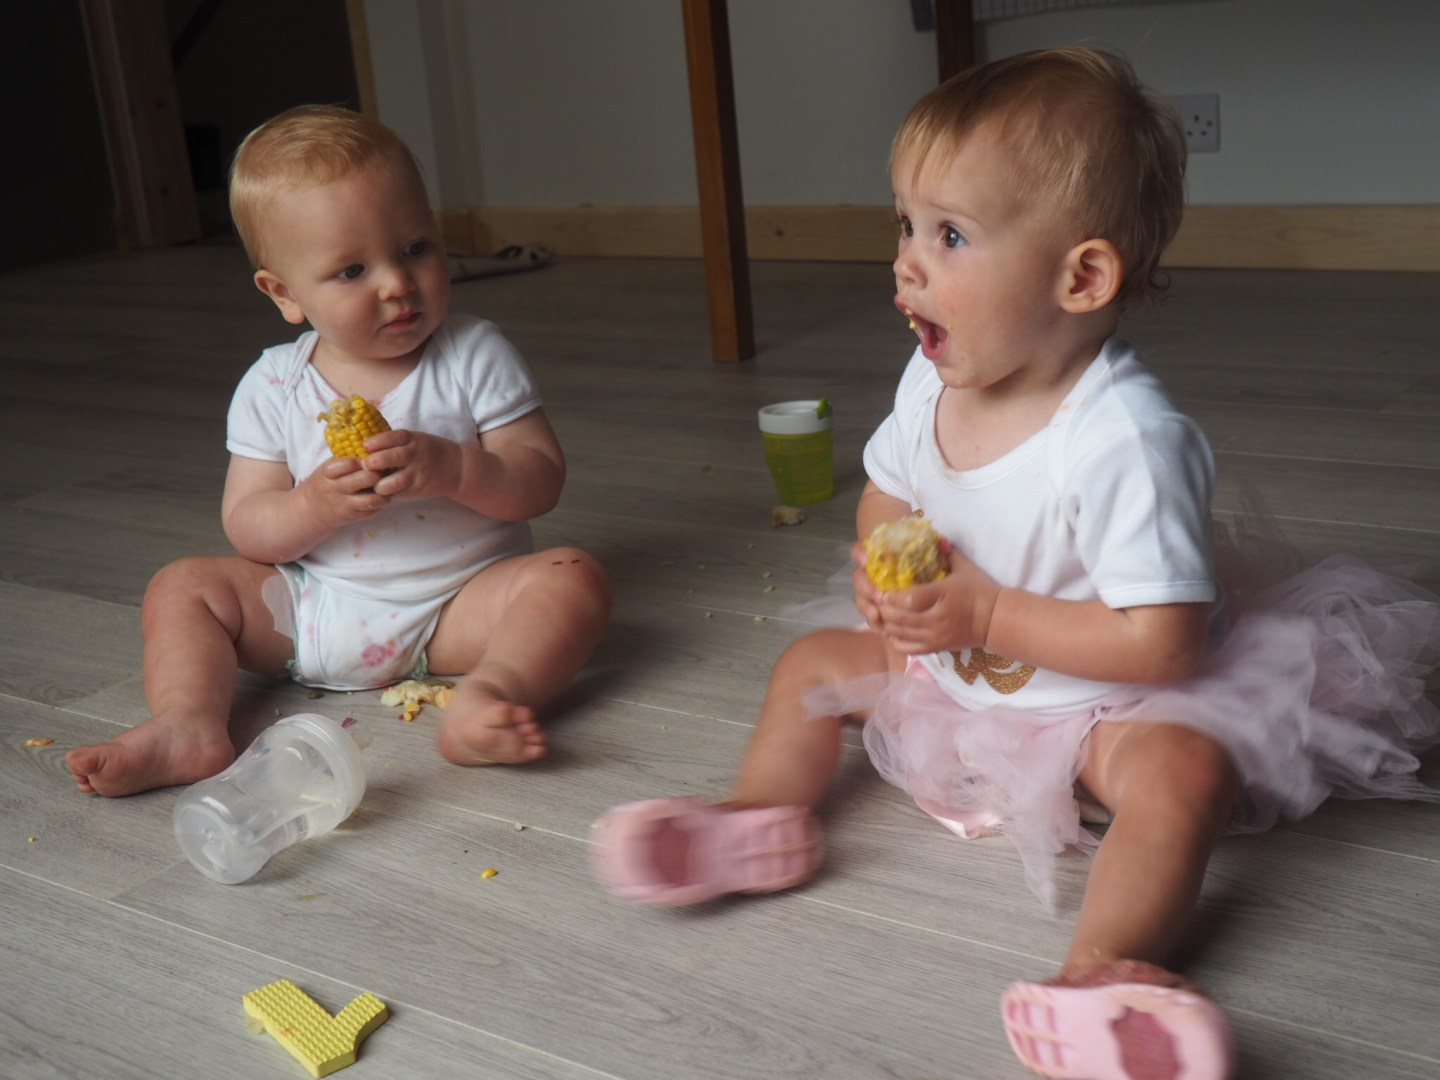 a boy and girl baby eating sweetcorn in white vests| Letters to Ettie